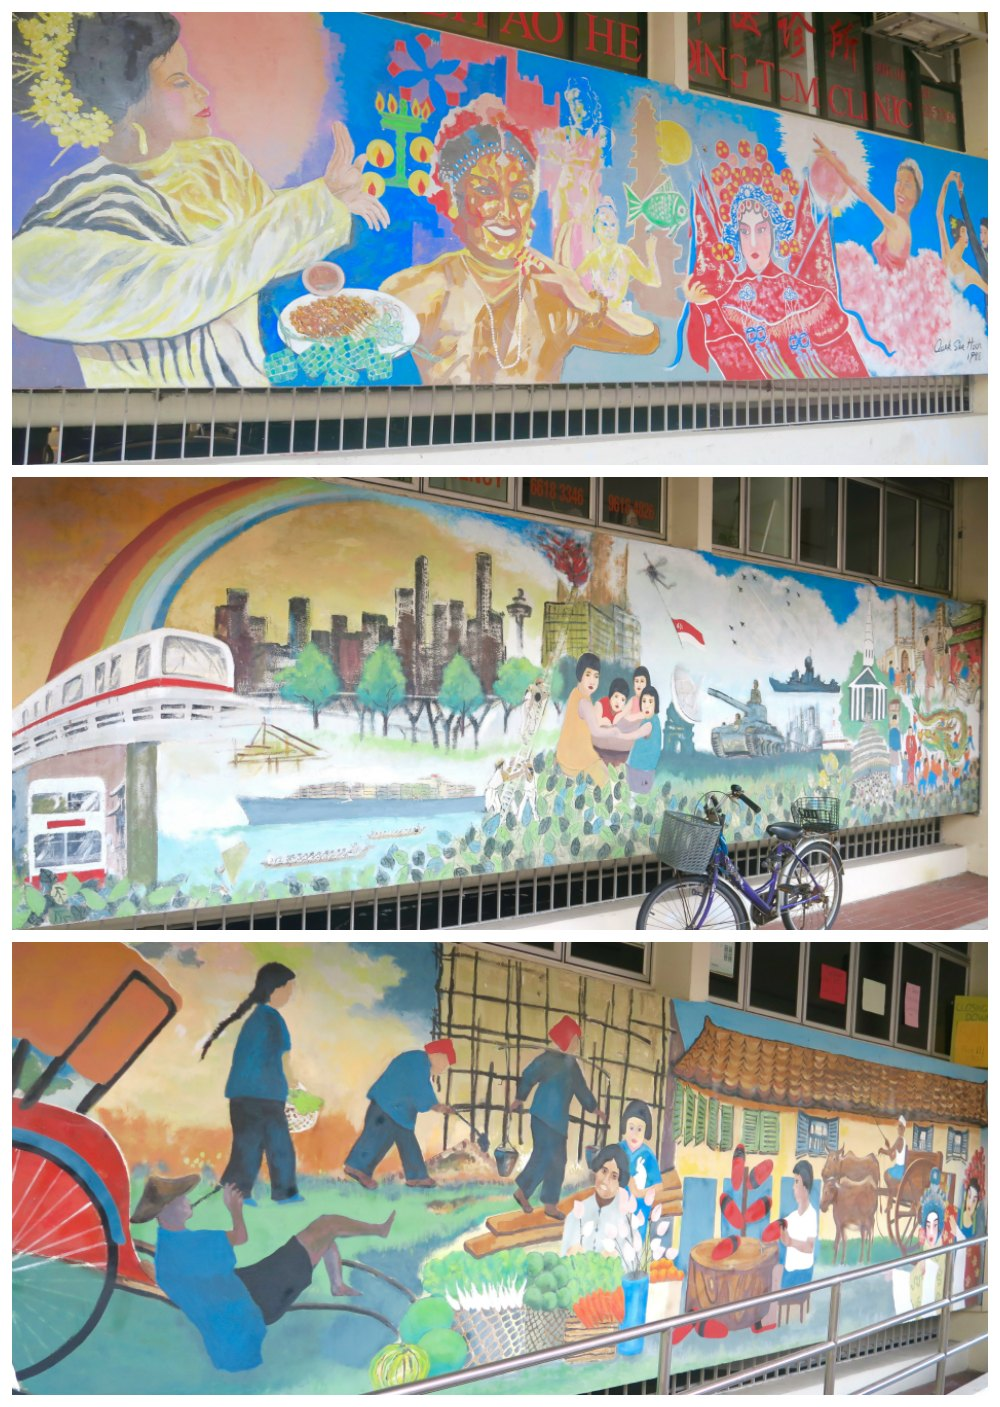 Historic murals in Chinatown Singapore |curlytraveller.com